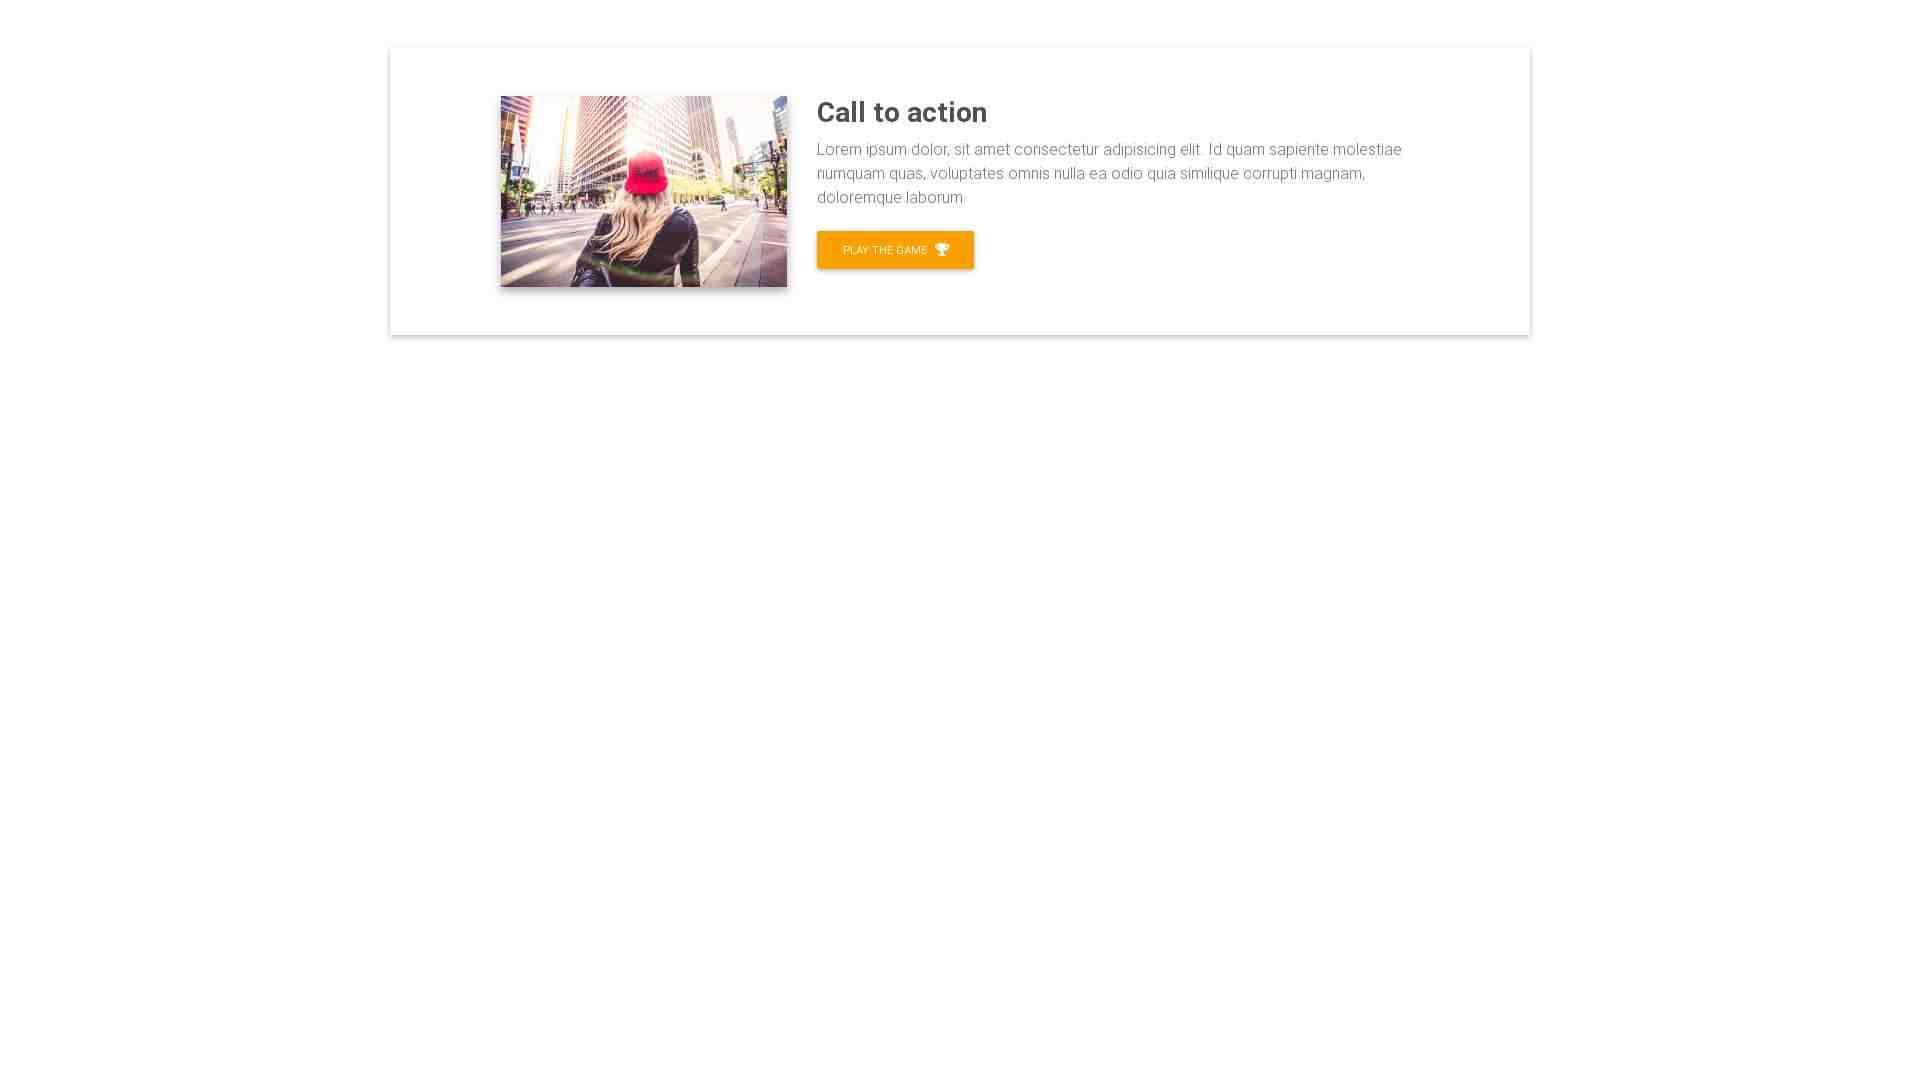 Material Design Blocks - Call to action 19